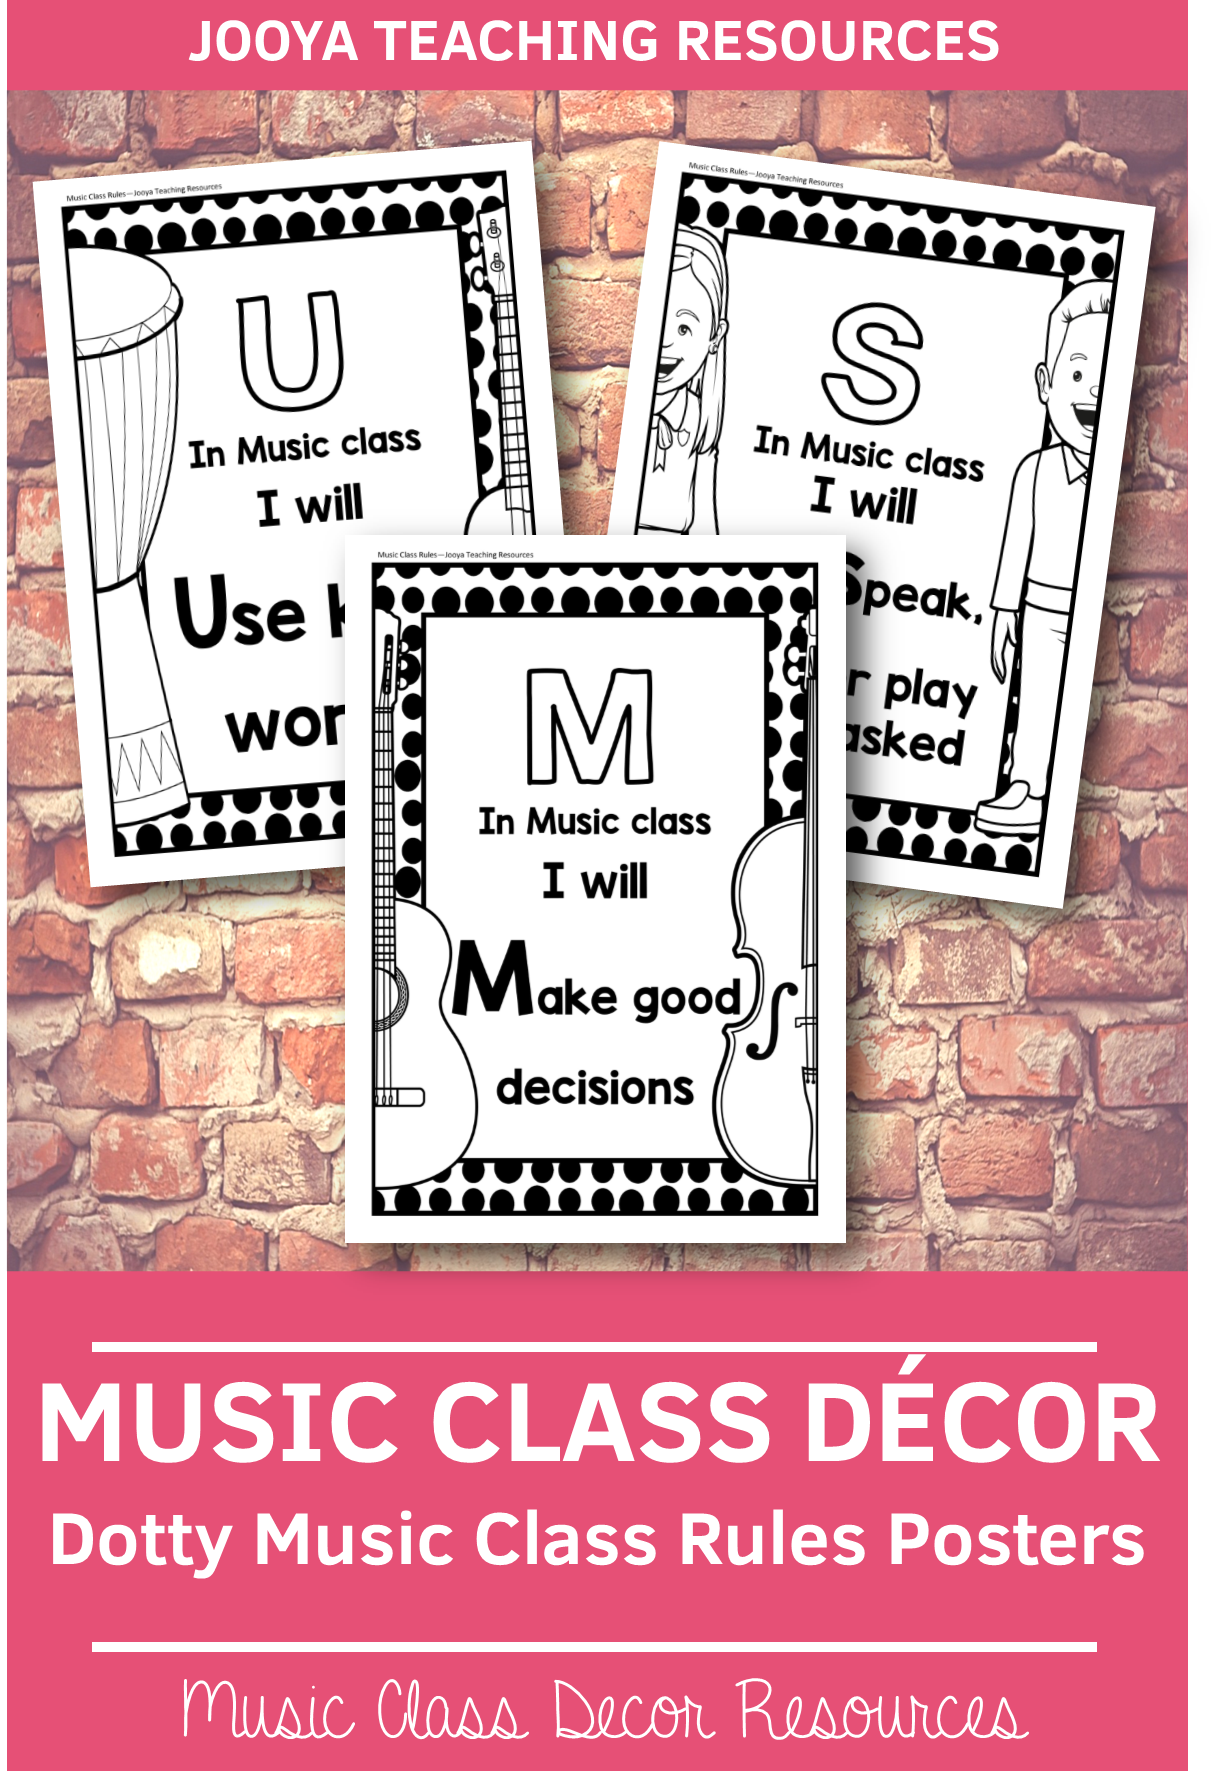 photo regarding Dotty Paper Printable titled Tunes Cl Decor - Dotty Tunes Cl Laws Posters